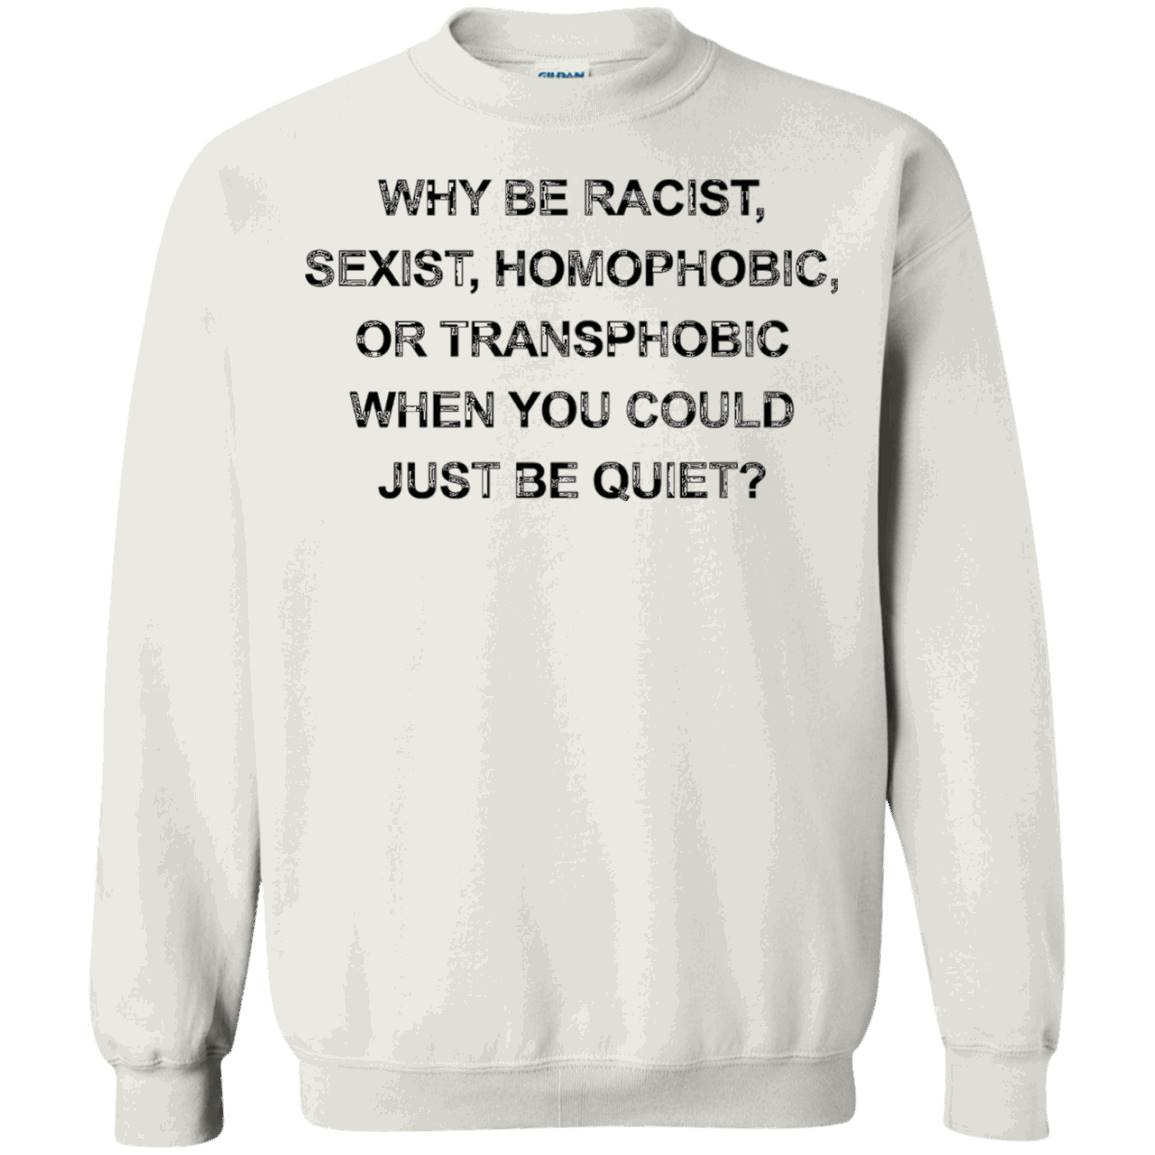 Why Be Racist Sexist Homophobic Just Be Quiet Funny T-Shirt – Sweatshirt